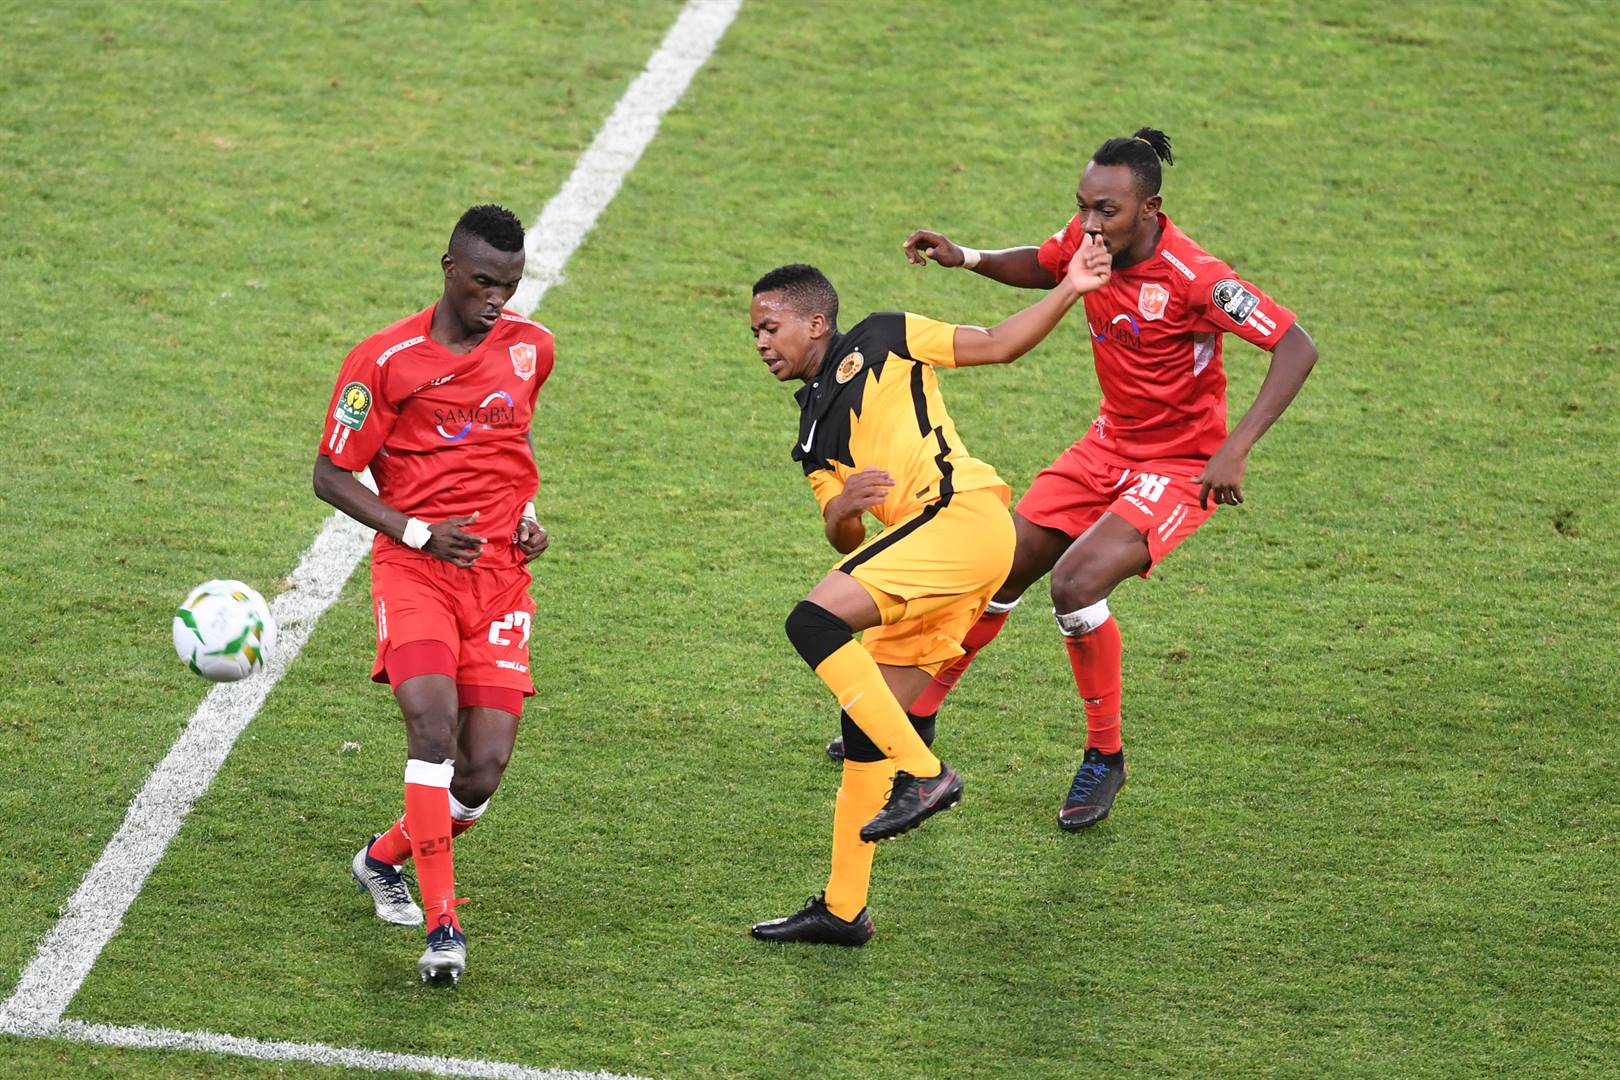 Kaizer Chiefs' Nkosingiphile Ngcobo shoots under pressure from Abou Mangue Camara of Horoya AC during their CAF Champions League group match at FNB Stadium on Tuesday night. Picture: Lefty Shivambu / Gallo Images